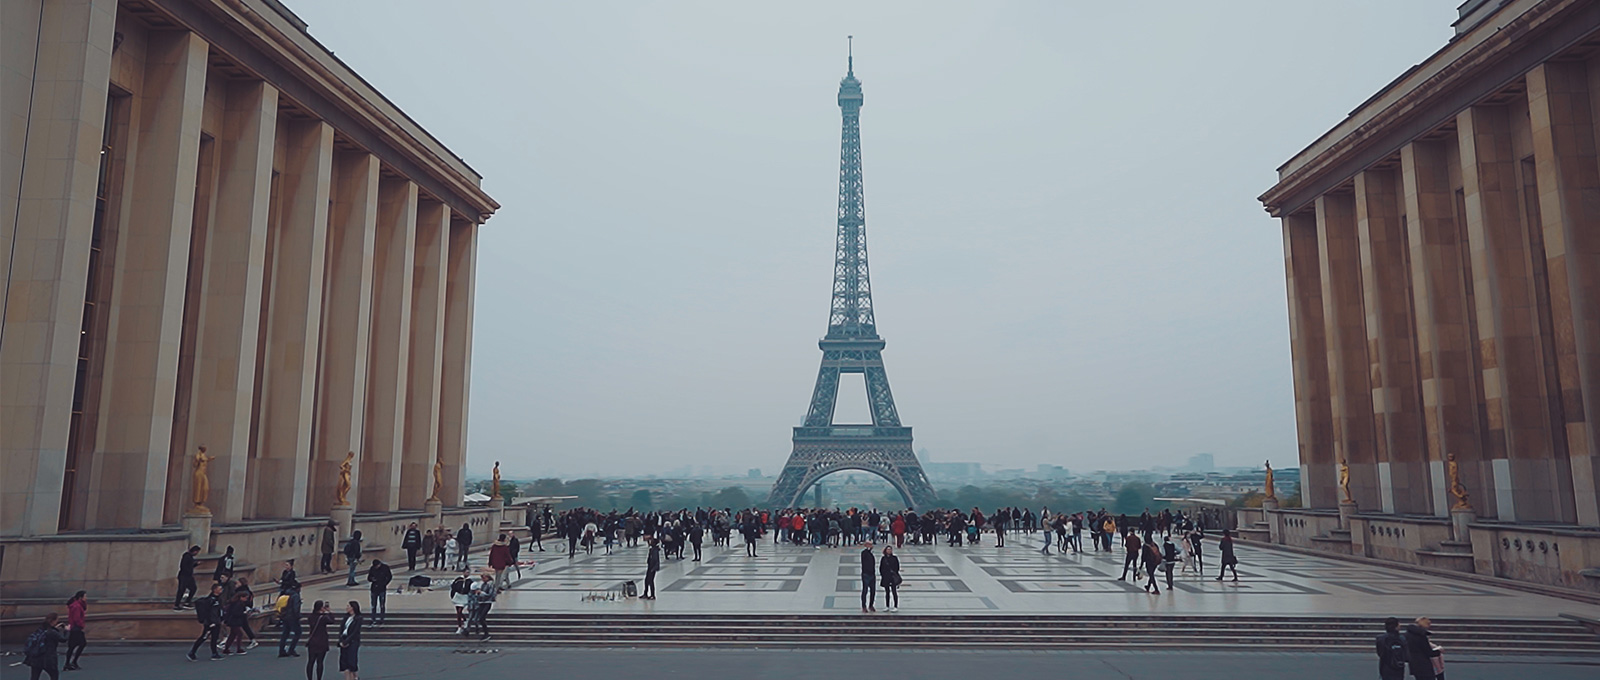 A view of the Eifel Tower